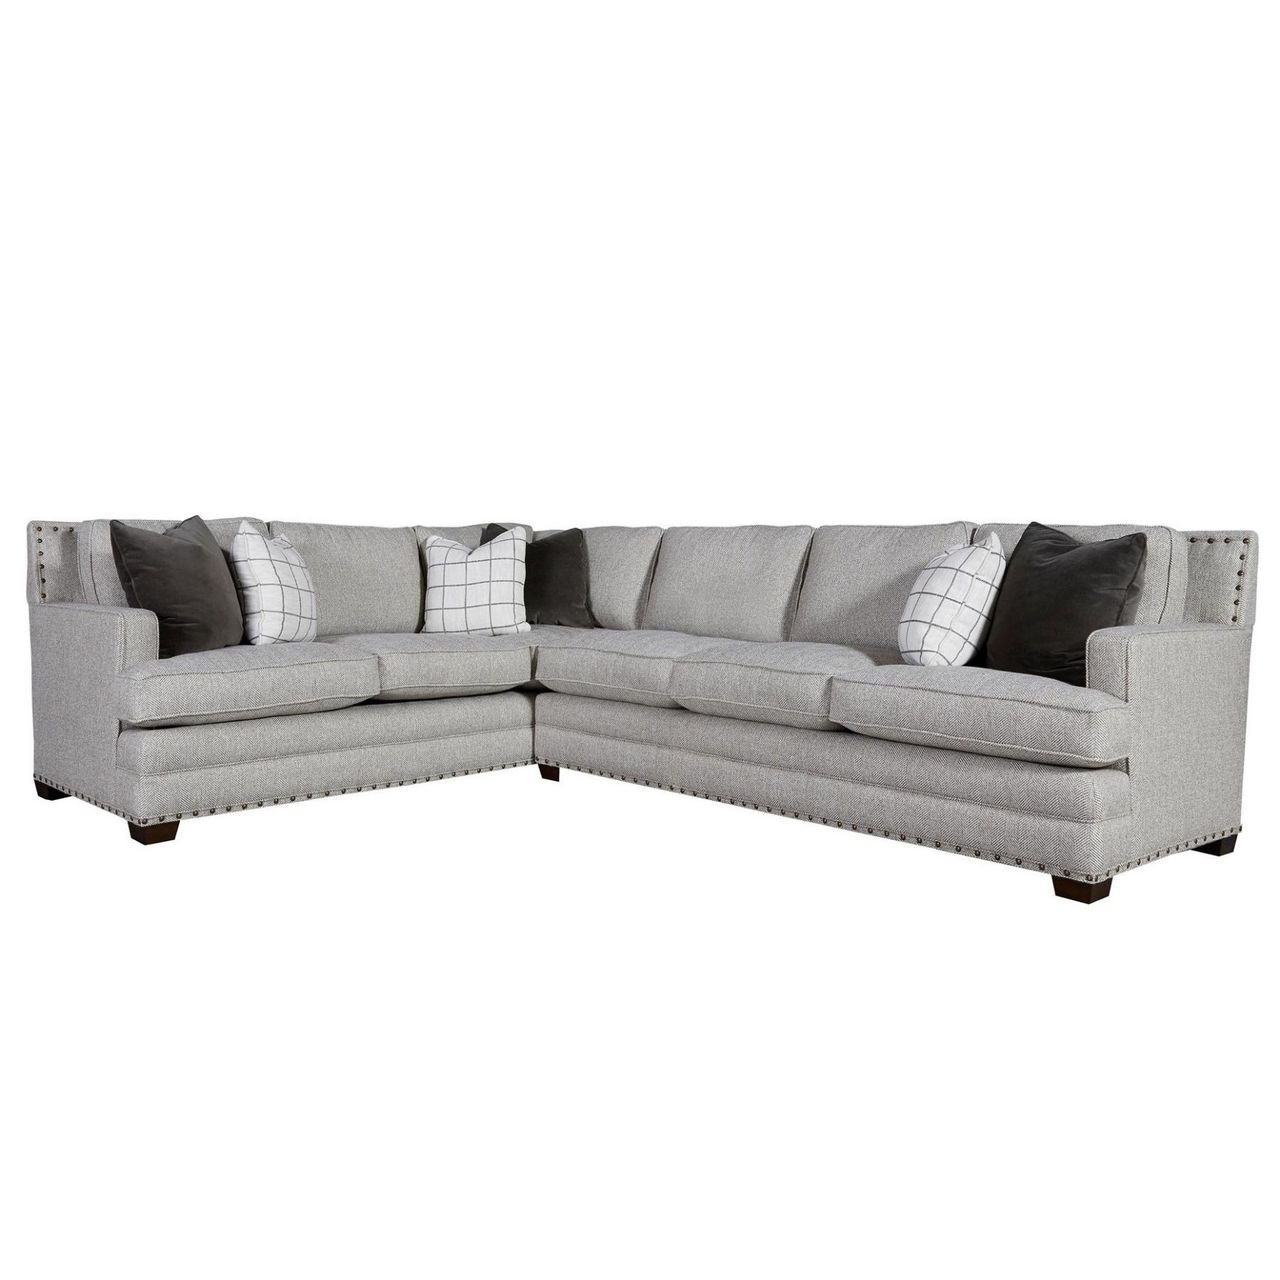 Super Riley 2 Piece Sectional Sofa With Nailheads Laf Ibusinesslaw Wood Chair Design Ideas Ibusinesslaworg